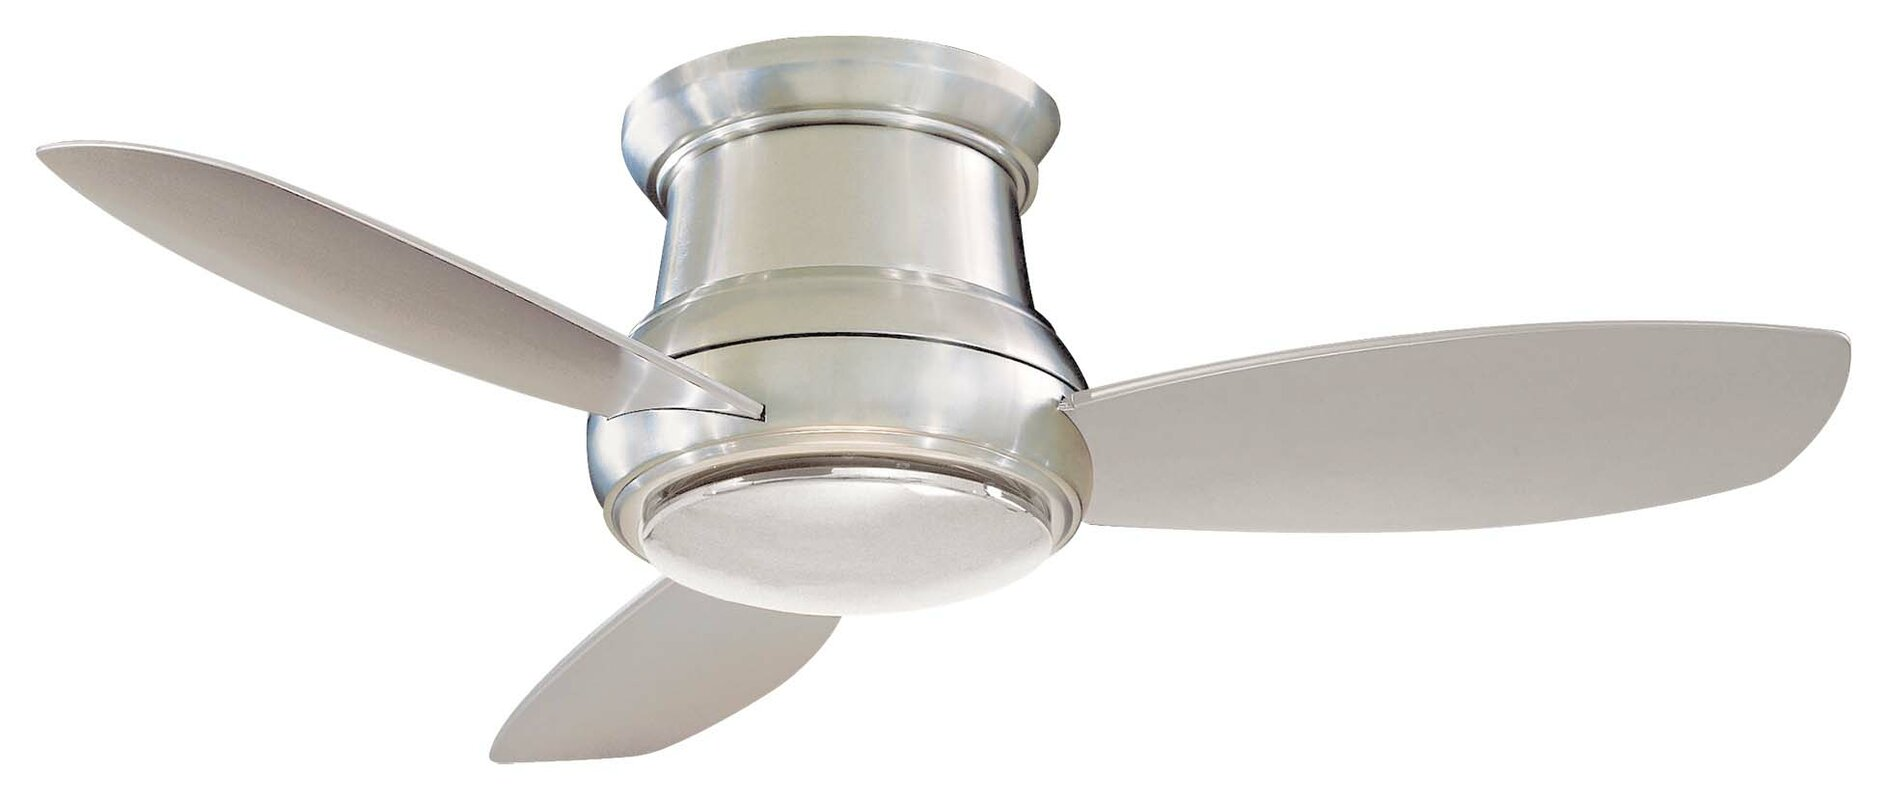 Minka aire 44 concept ii 3 blade led ceiling fan reviews wayfair 44 concept ii 3 blade led ceiling fan aloadofball Choice Image